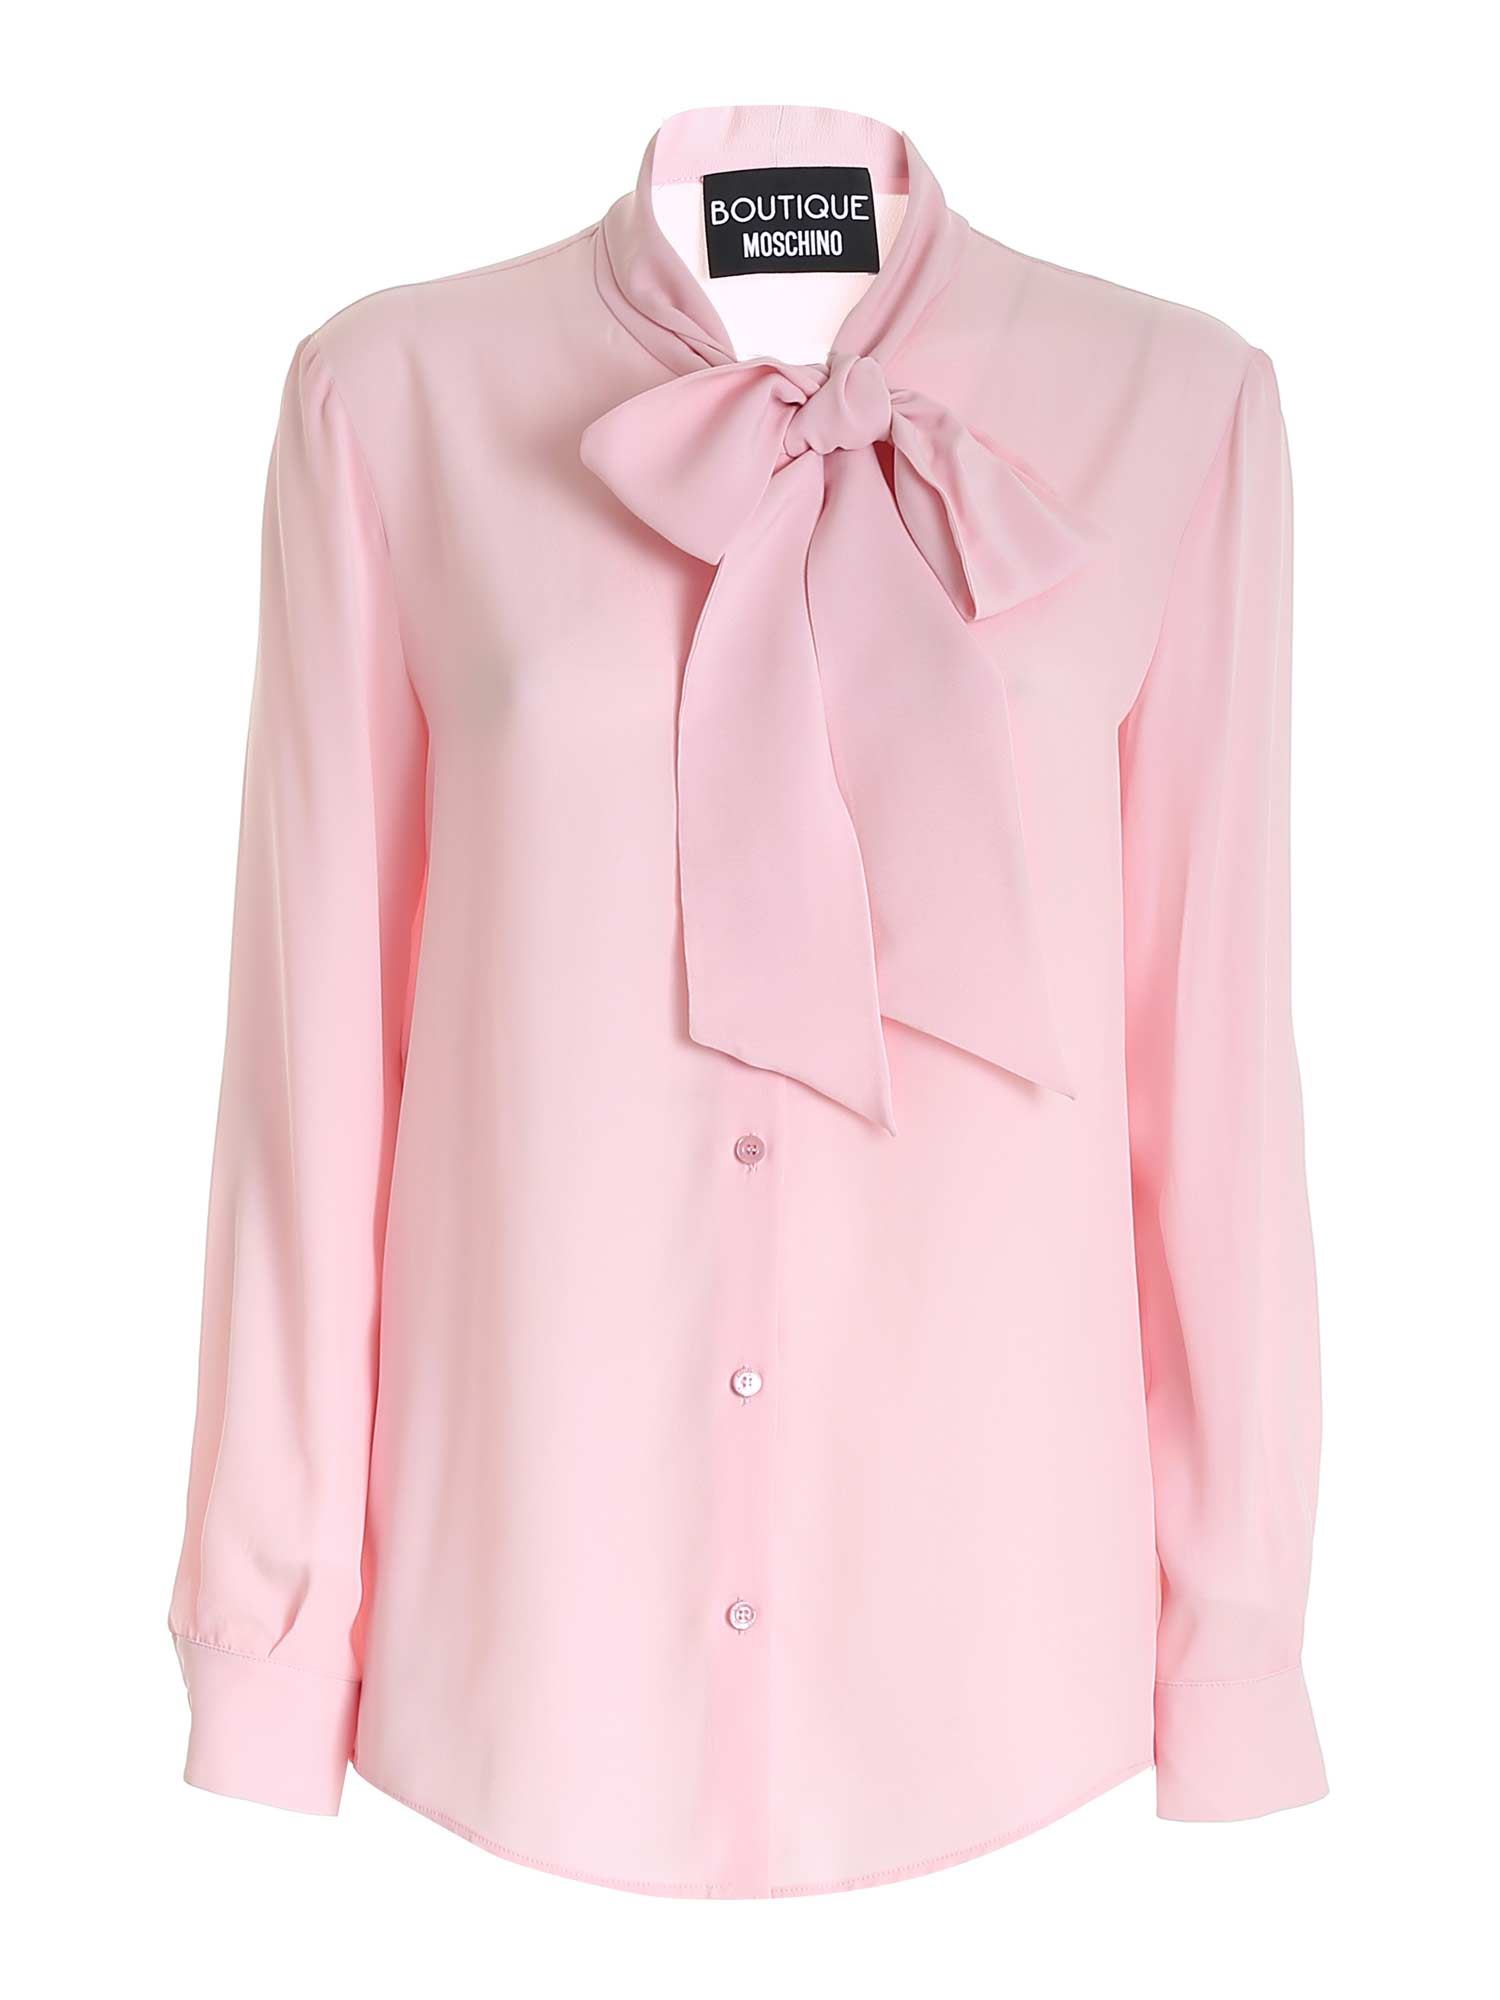 Moschino Boutique MOSCHINO BOUTIQUE BOW SHIRT IN PINK